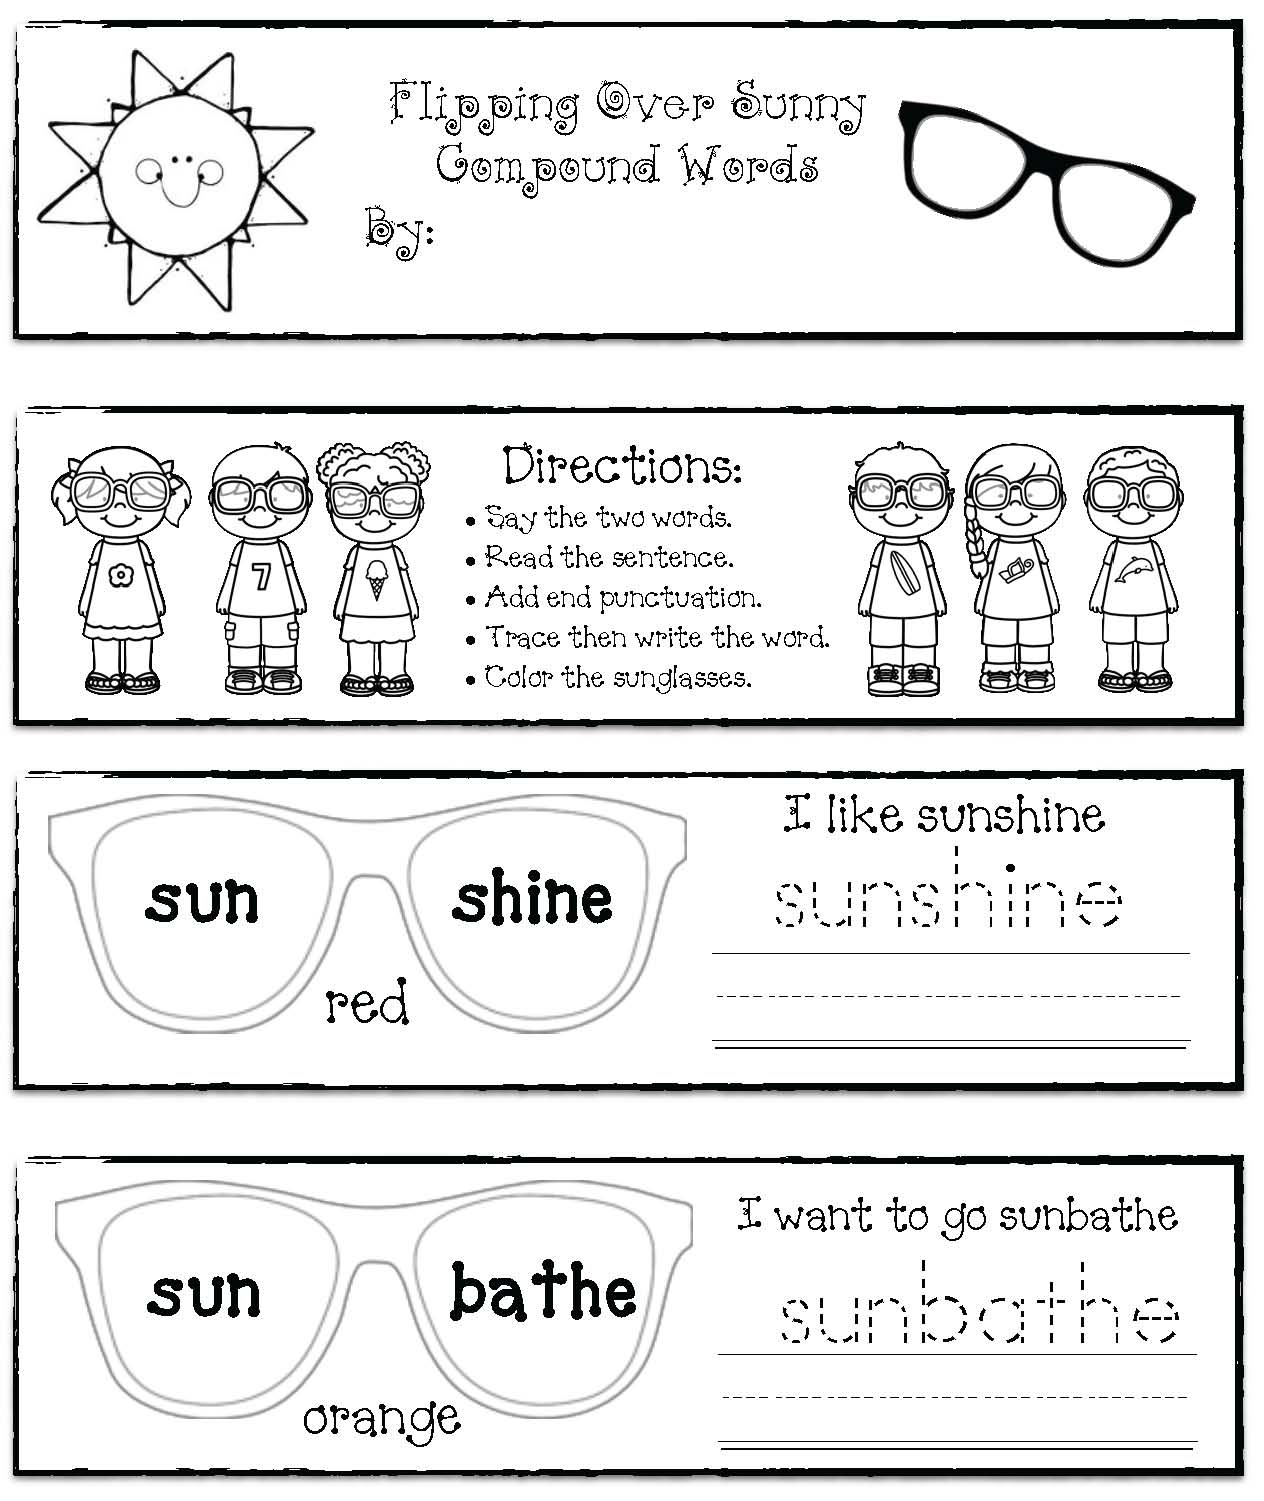 groundhog activities, groundhog crafts, groundhog games, groundhog math activities, groundhog centers, groundhog reading activities, groundhog word work, gr blend activities, compound word activities, gr digraph activities